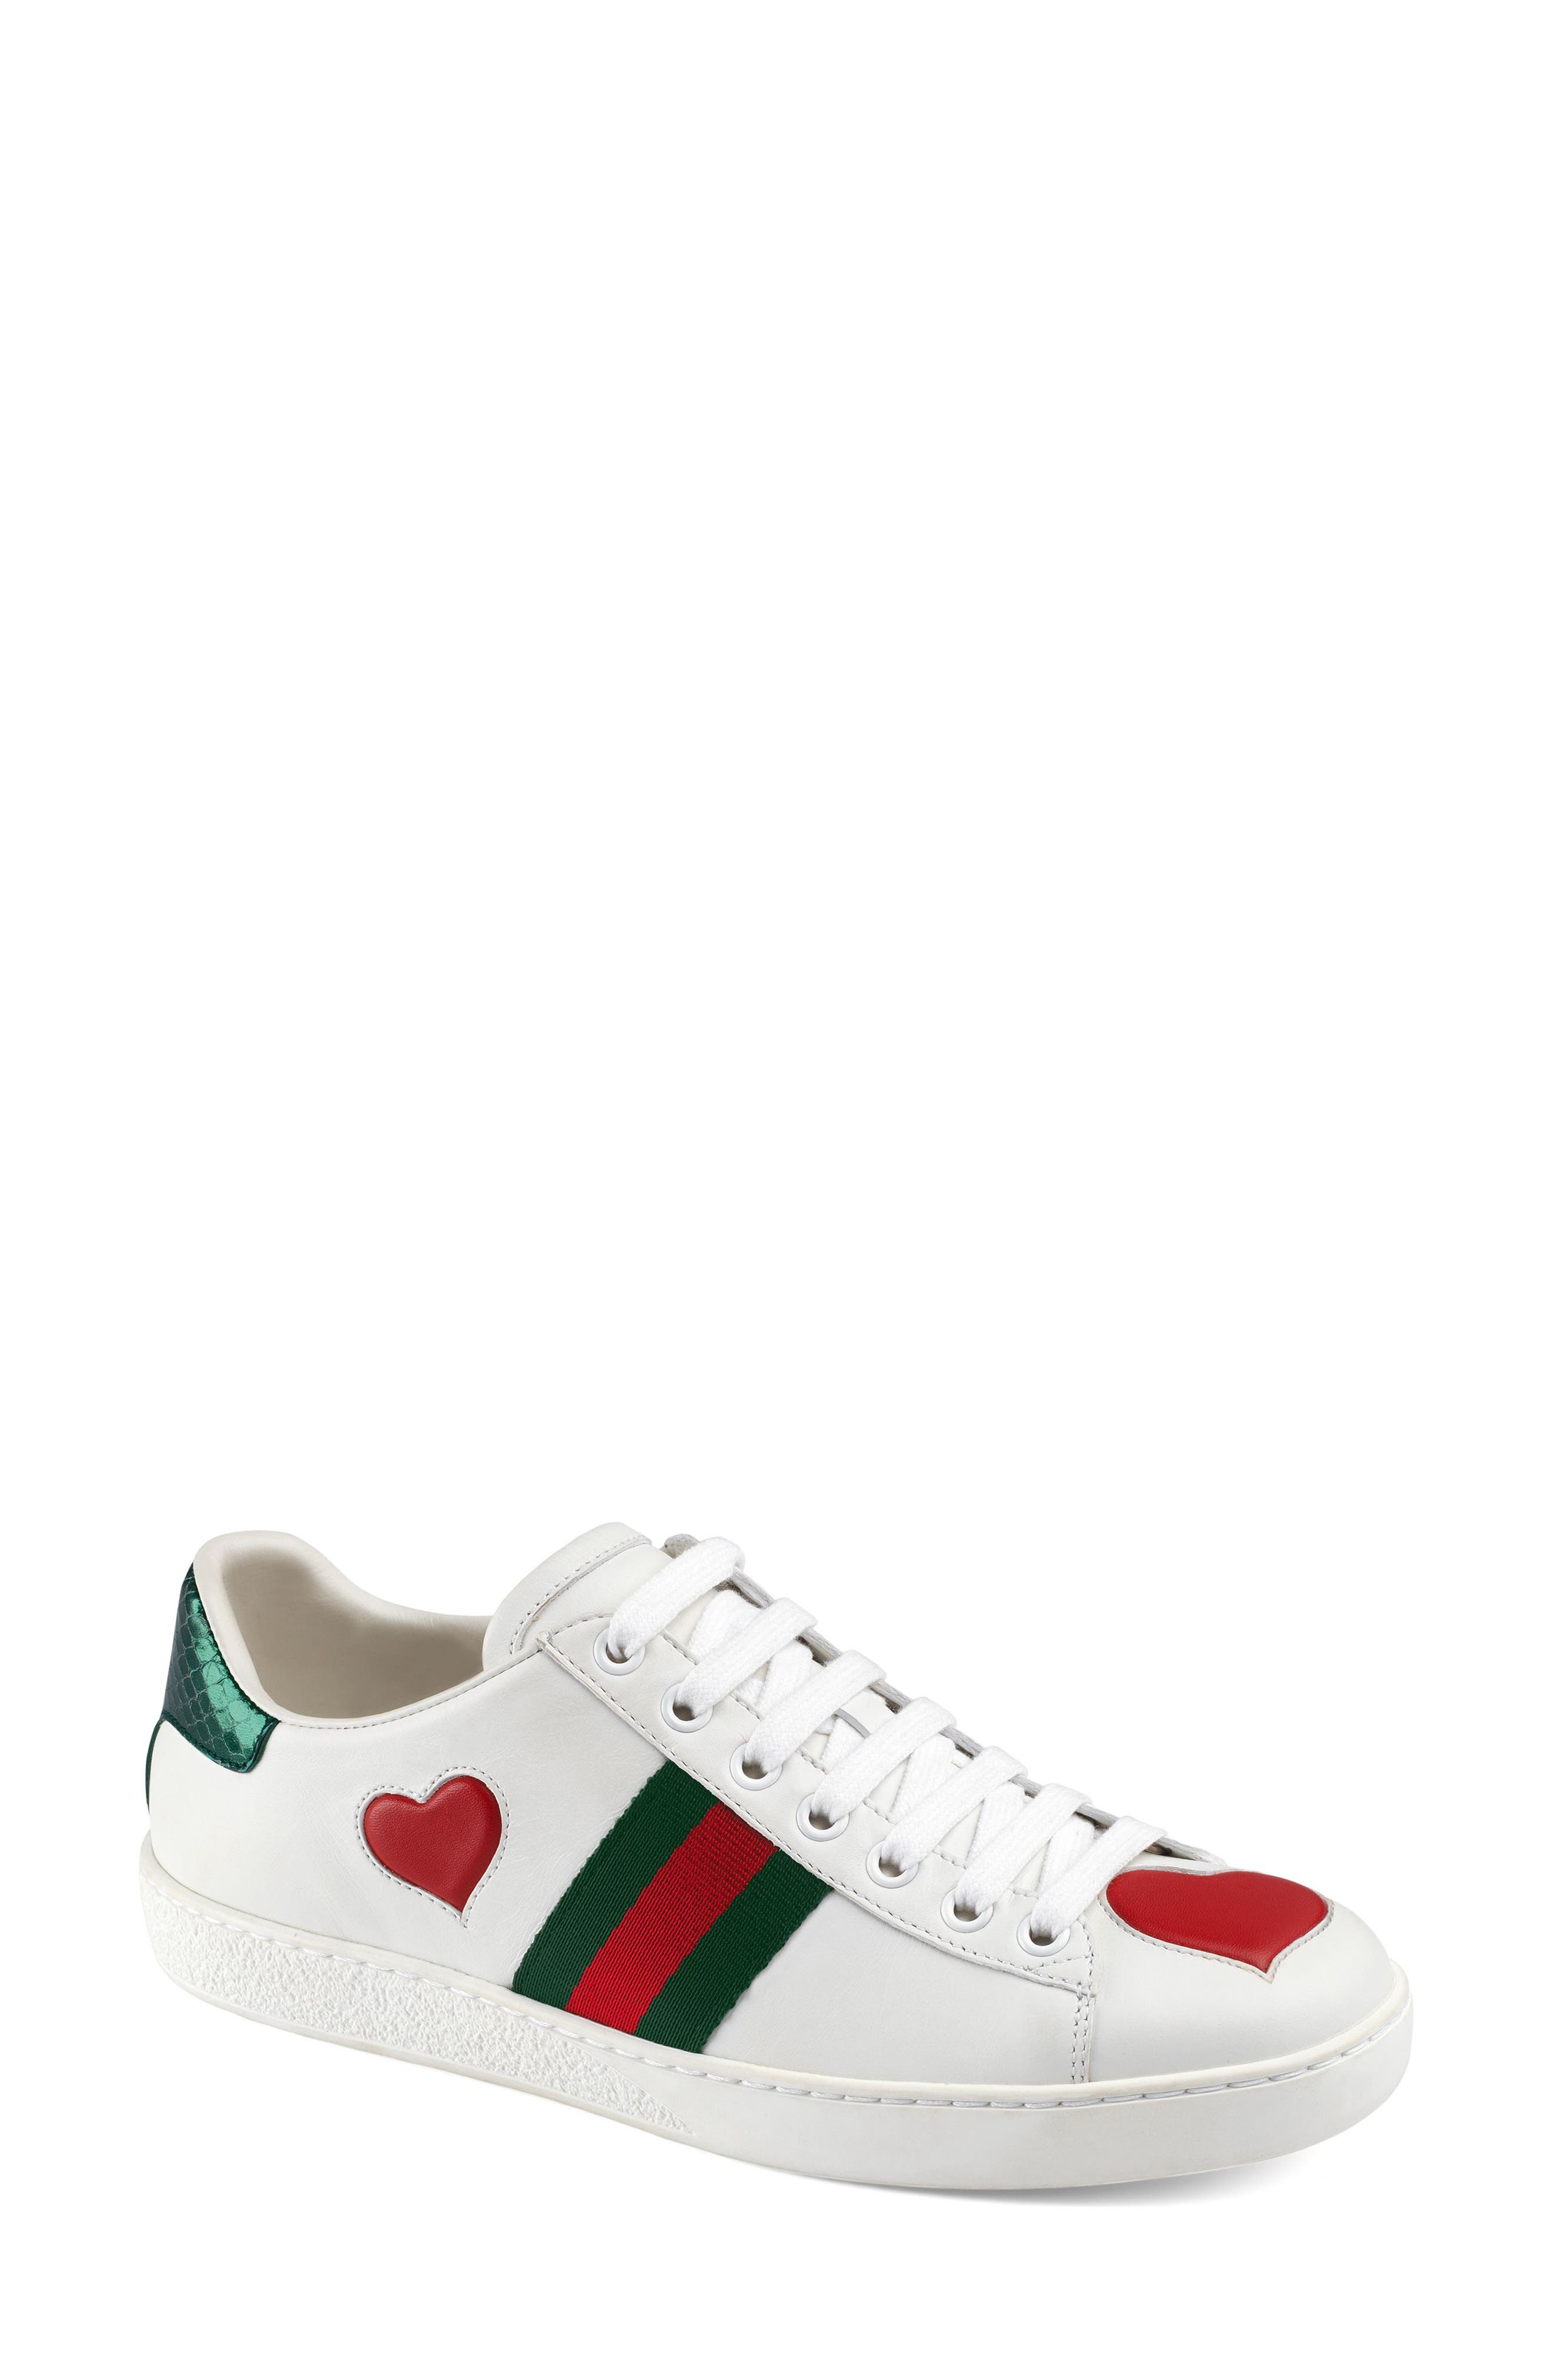 GUCCI, New Ace Heart Sneaker, Main thumbnail 1, color, WHITE